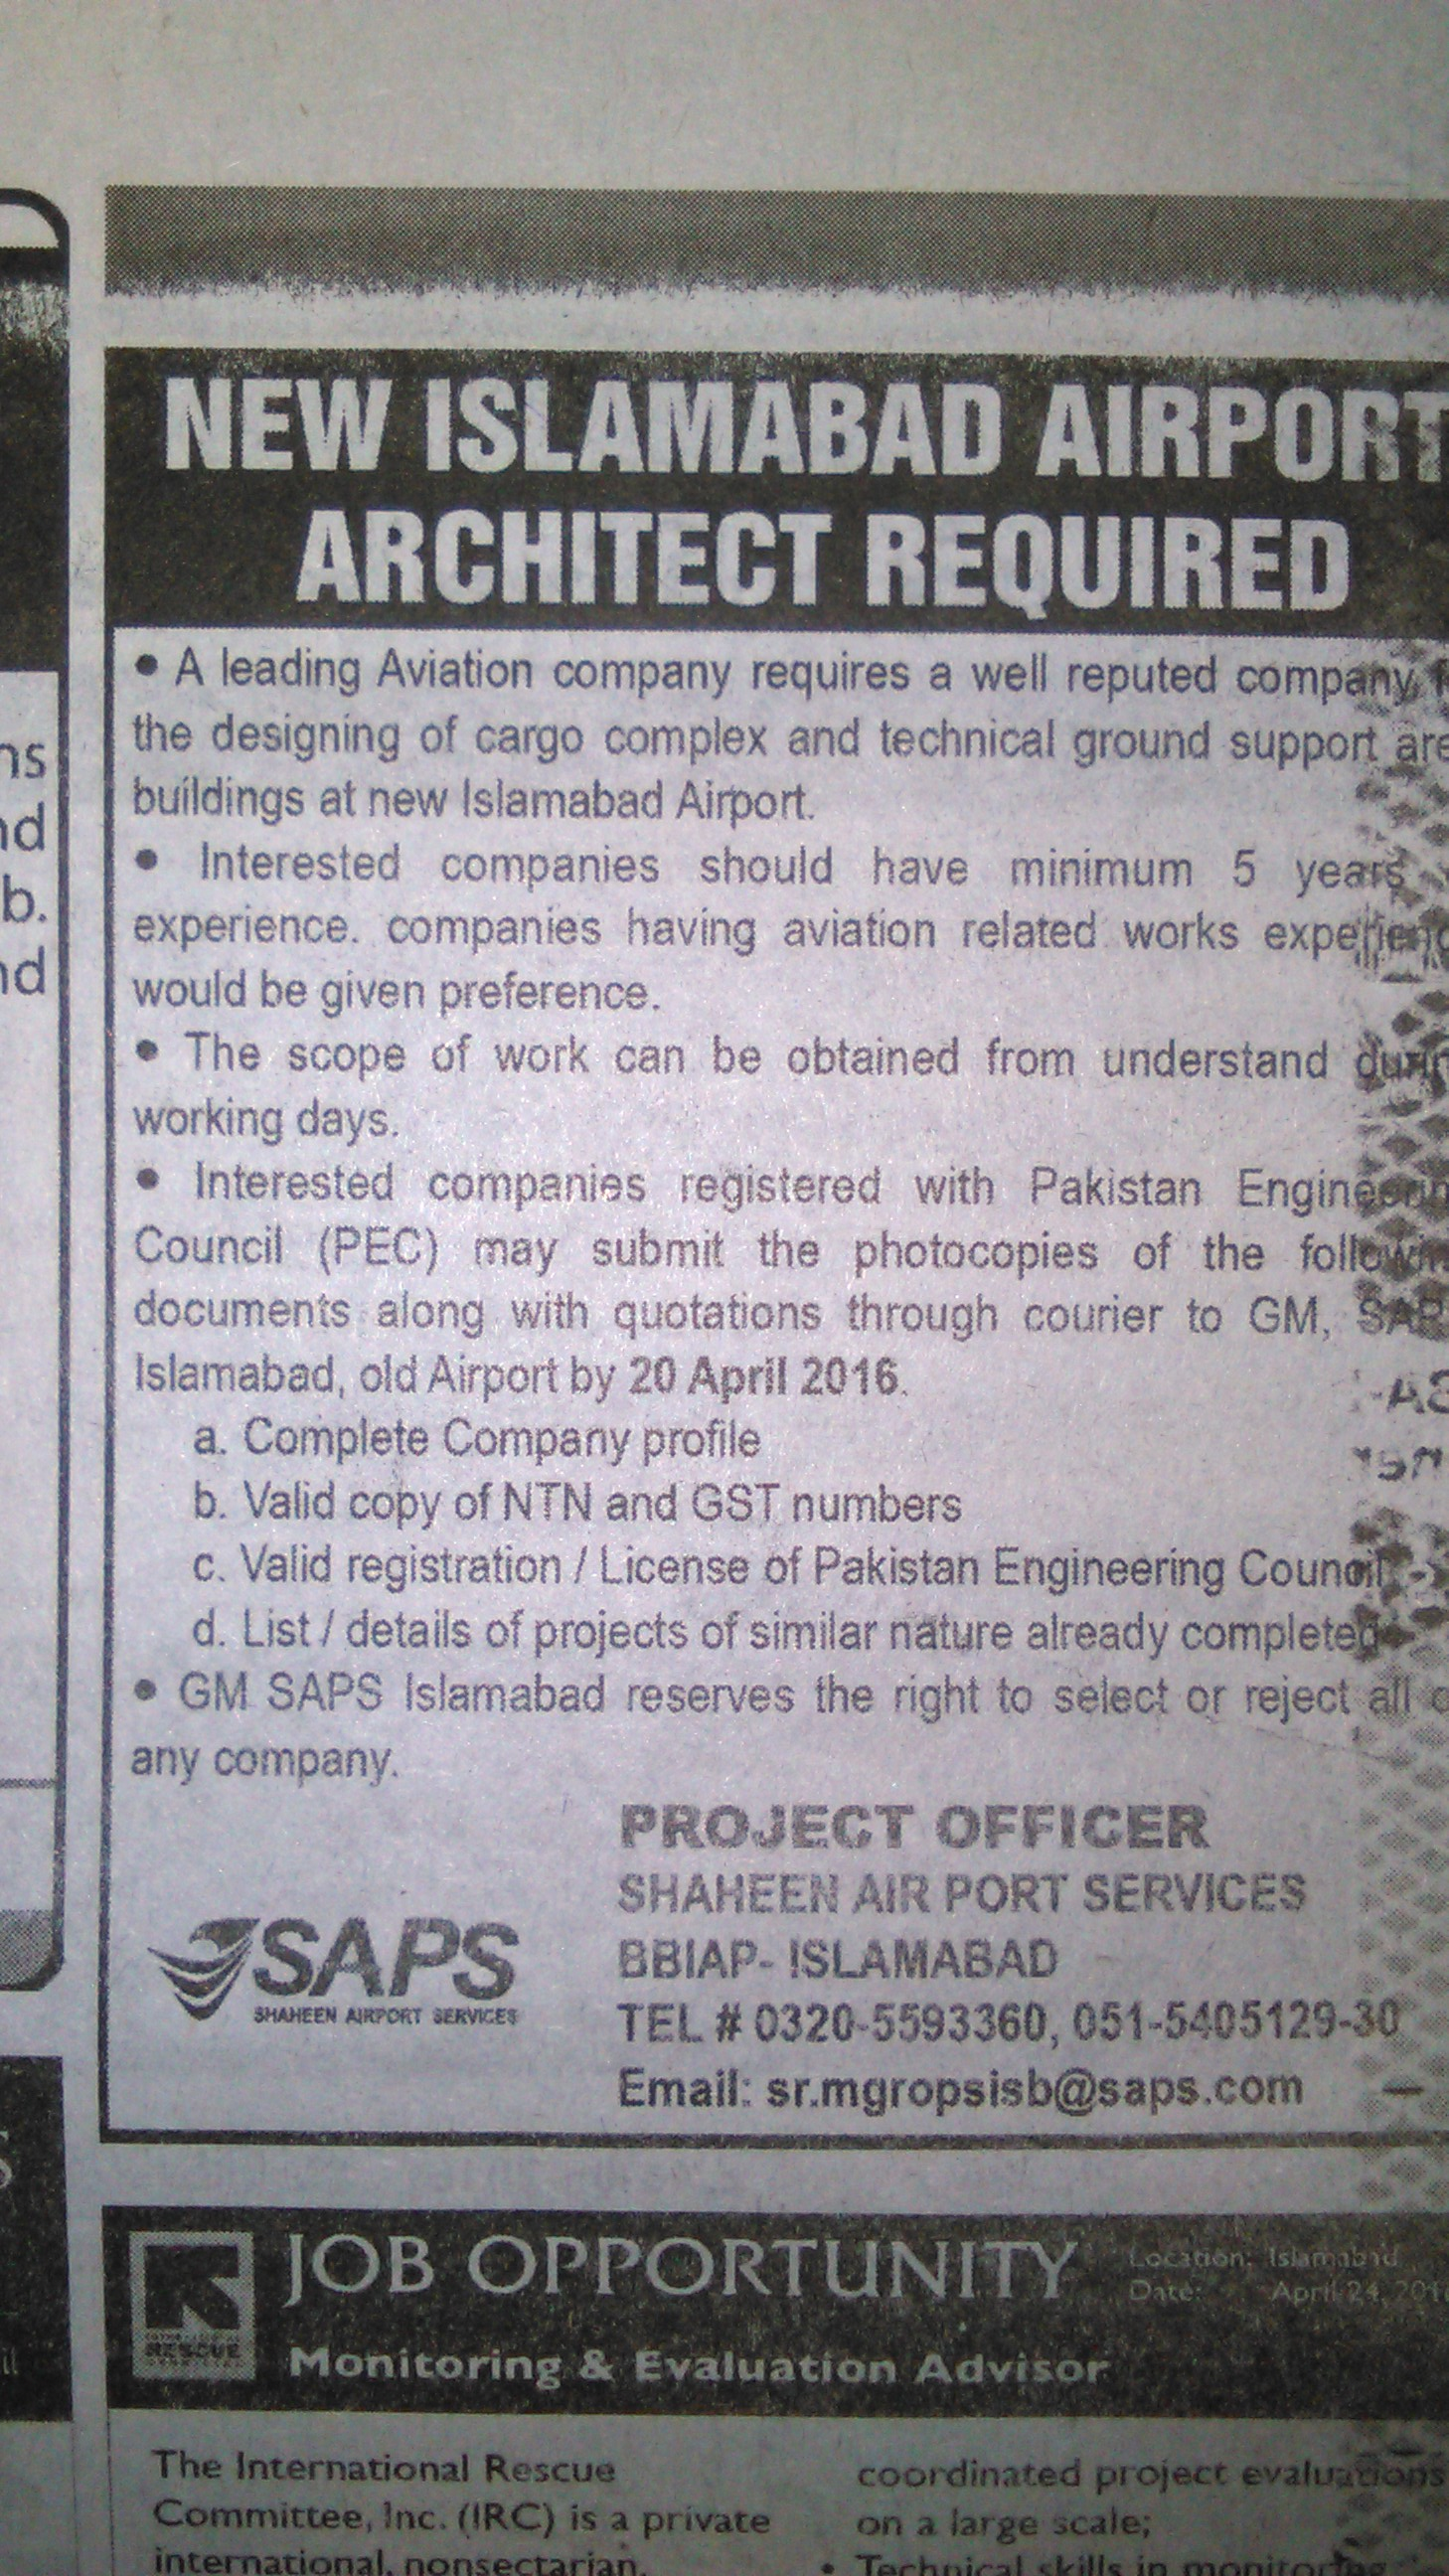 Islamabad Airport Architect Required